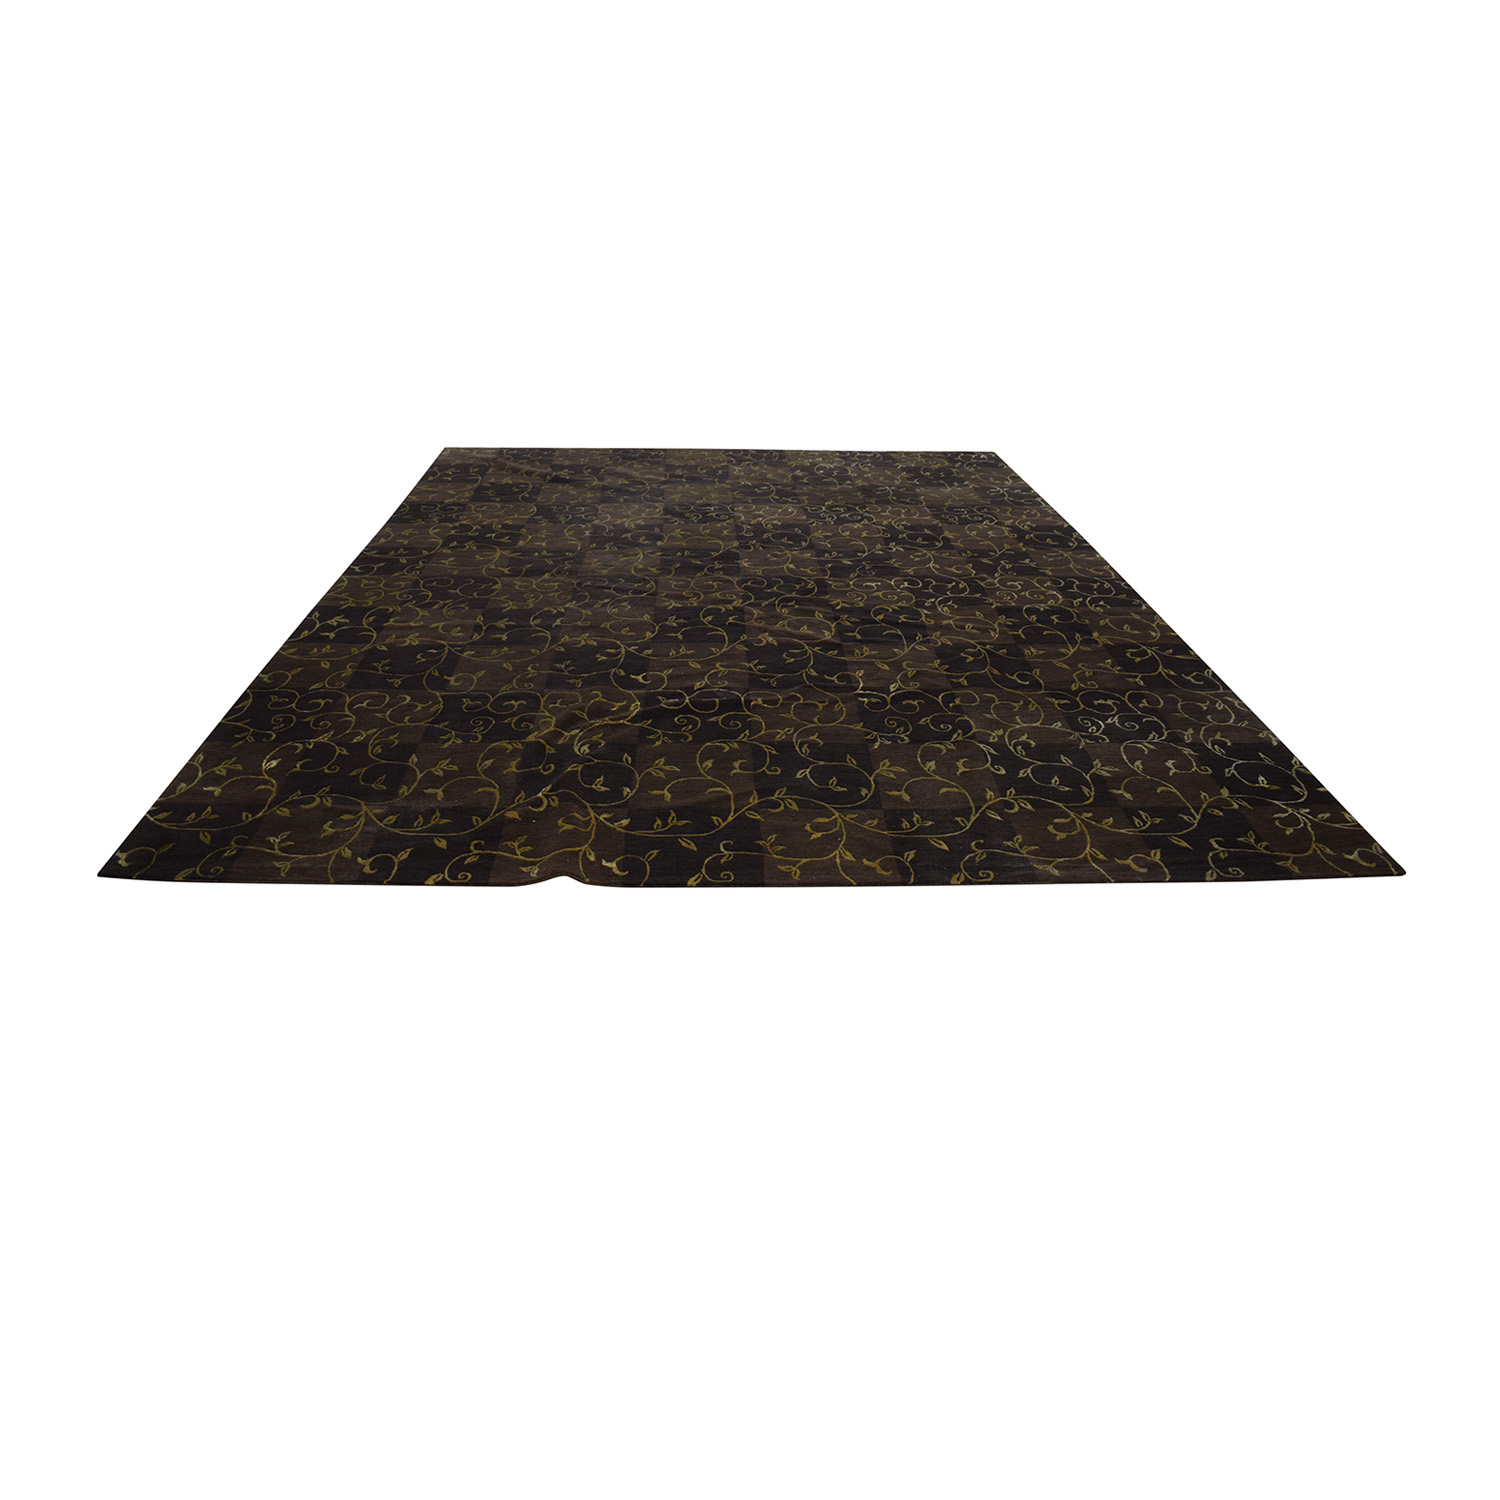 ABC Carpet & Home ABC Carpet & Home Scroll Design Rug brown